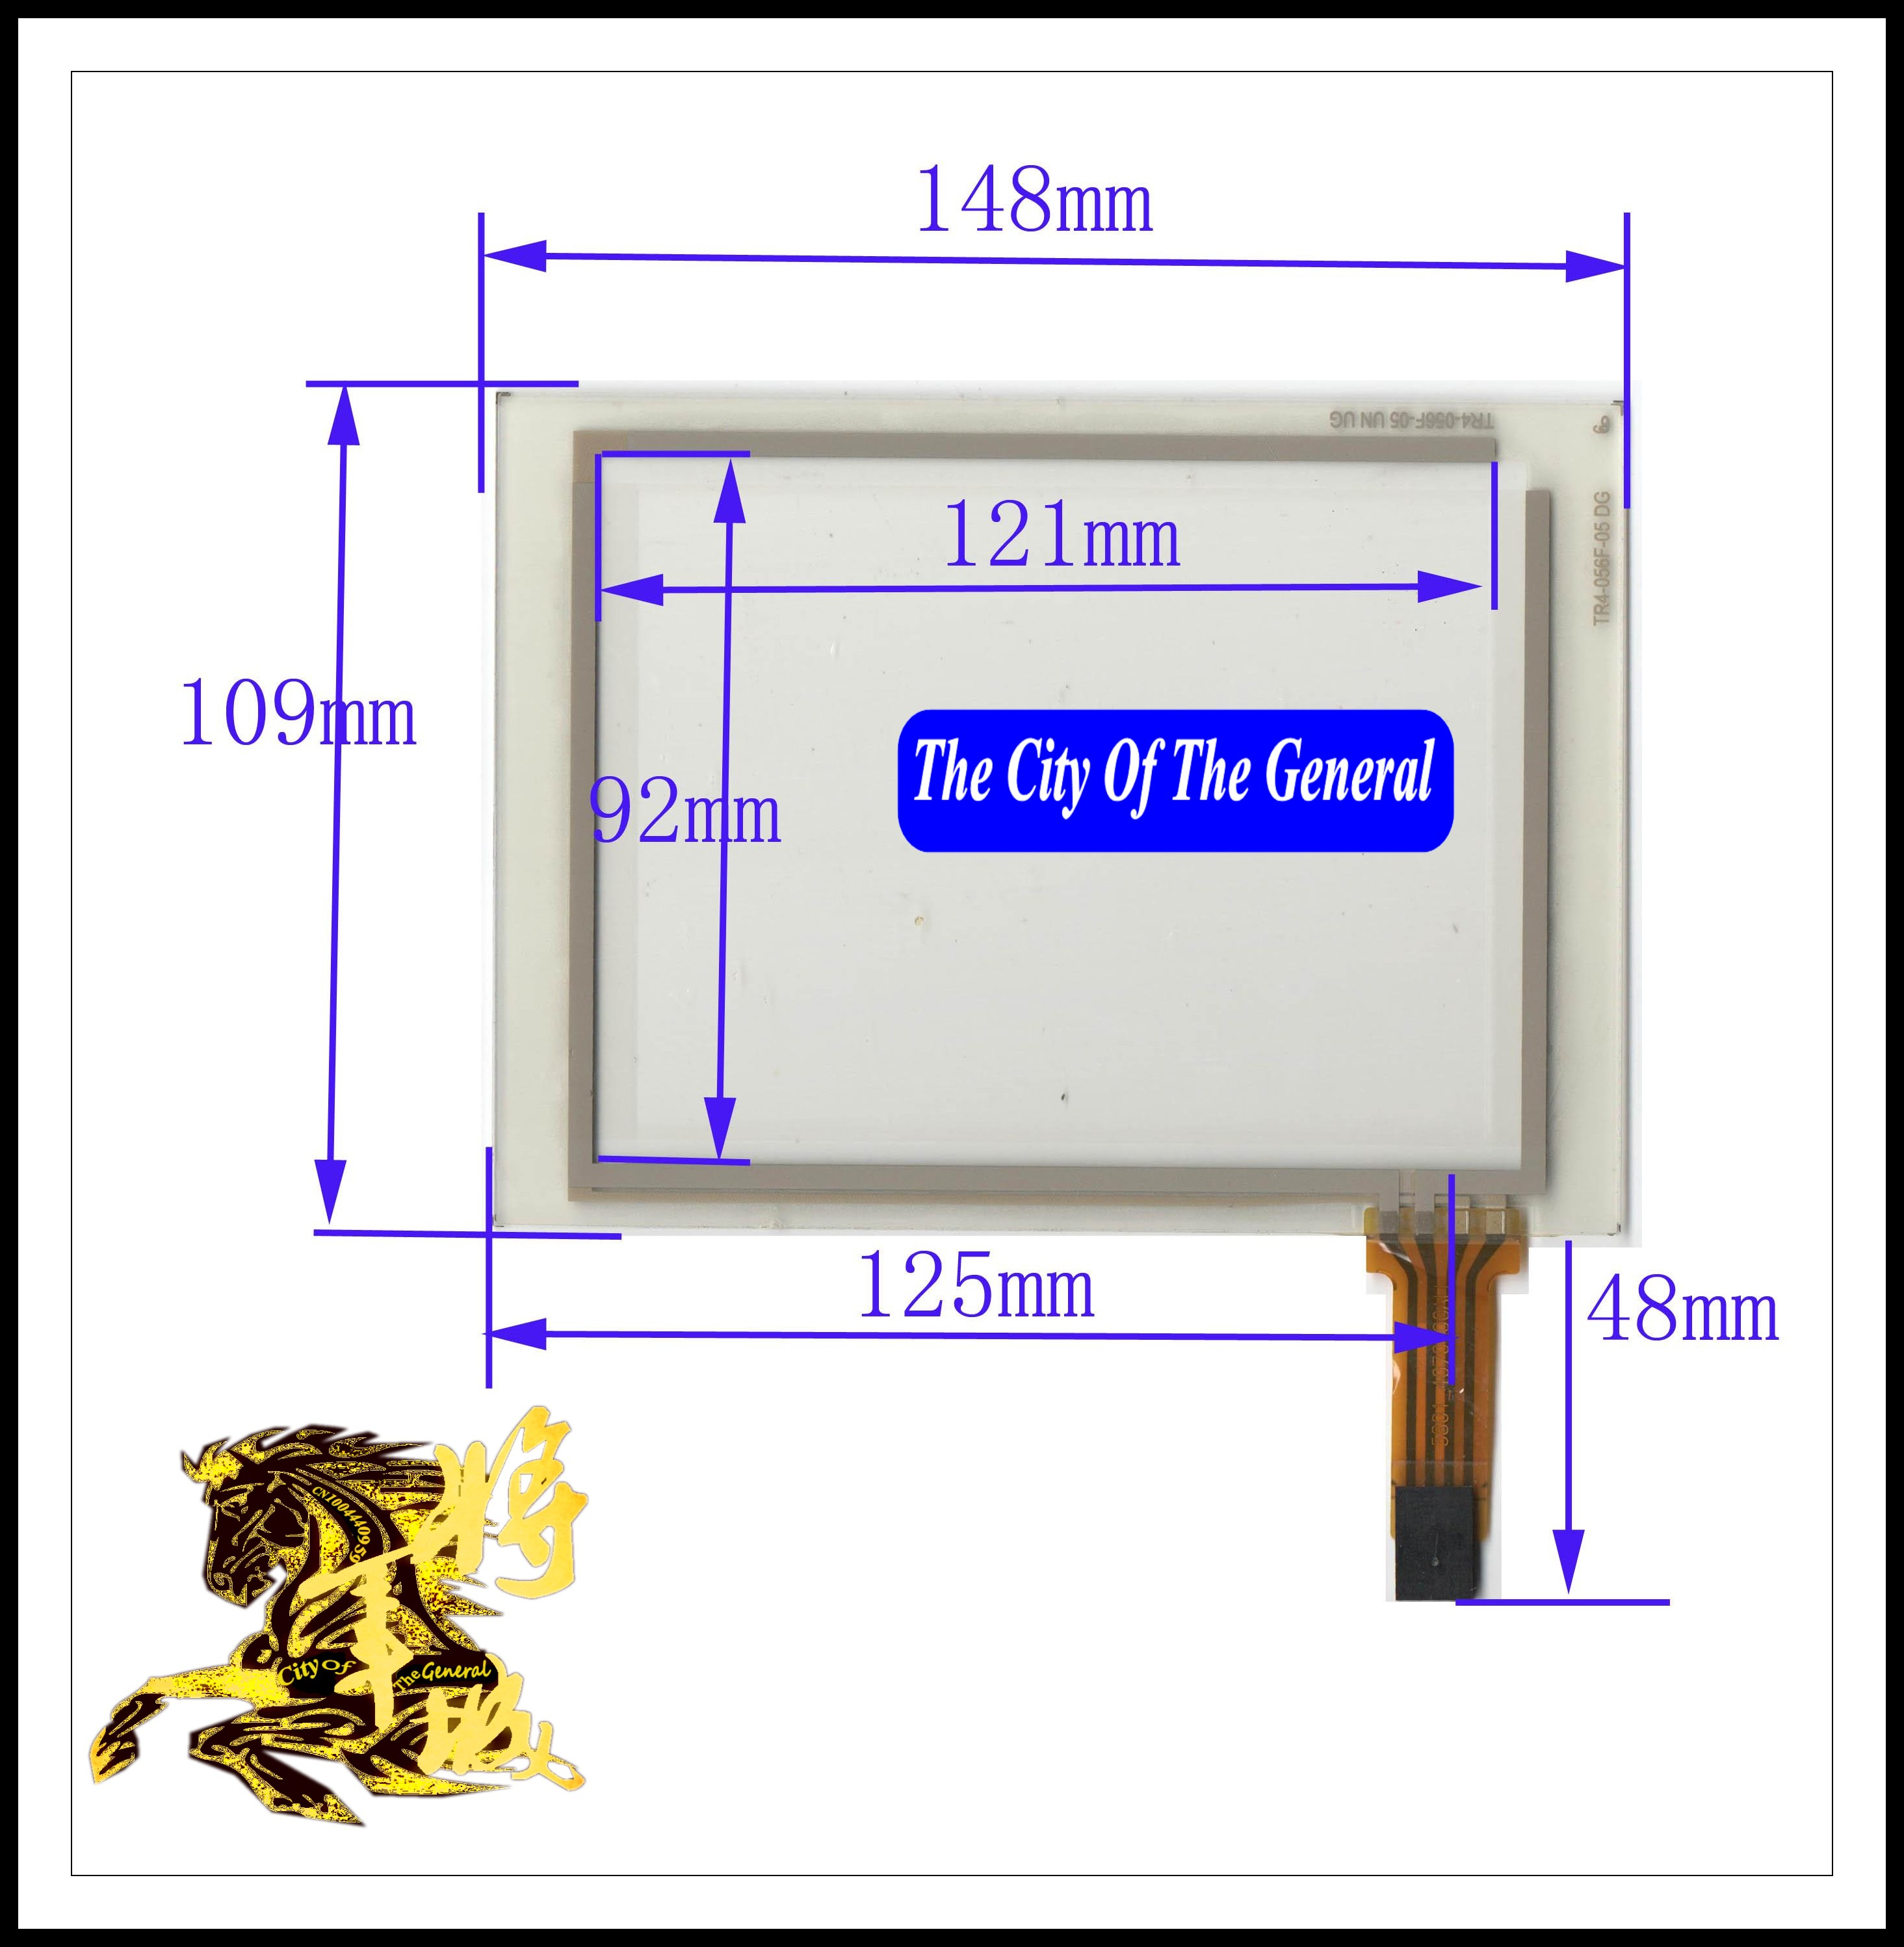 GENCTY For four-wire resistance screen 148 * 109 W-Y